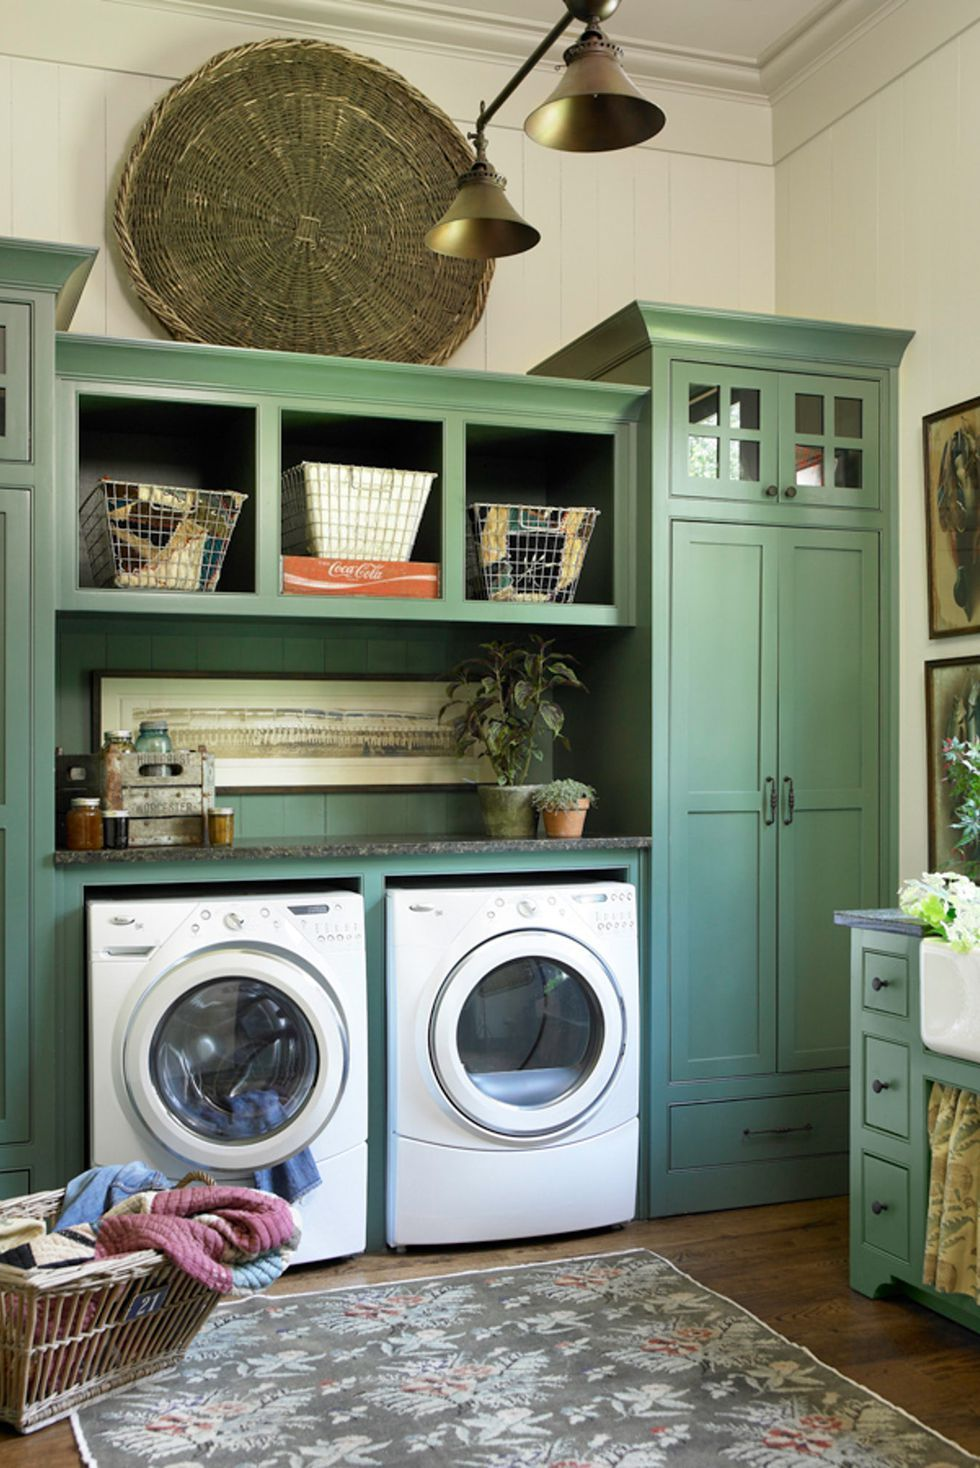 15 Brilliant Design Ideas For Small Laundry Rooms Laundry Room